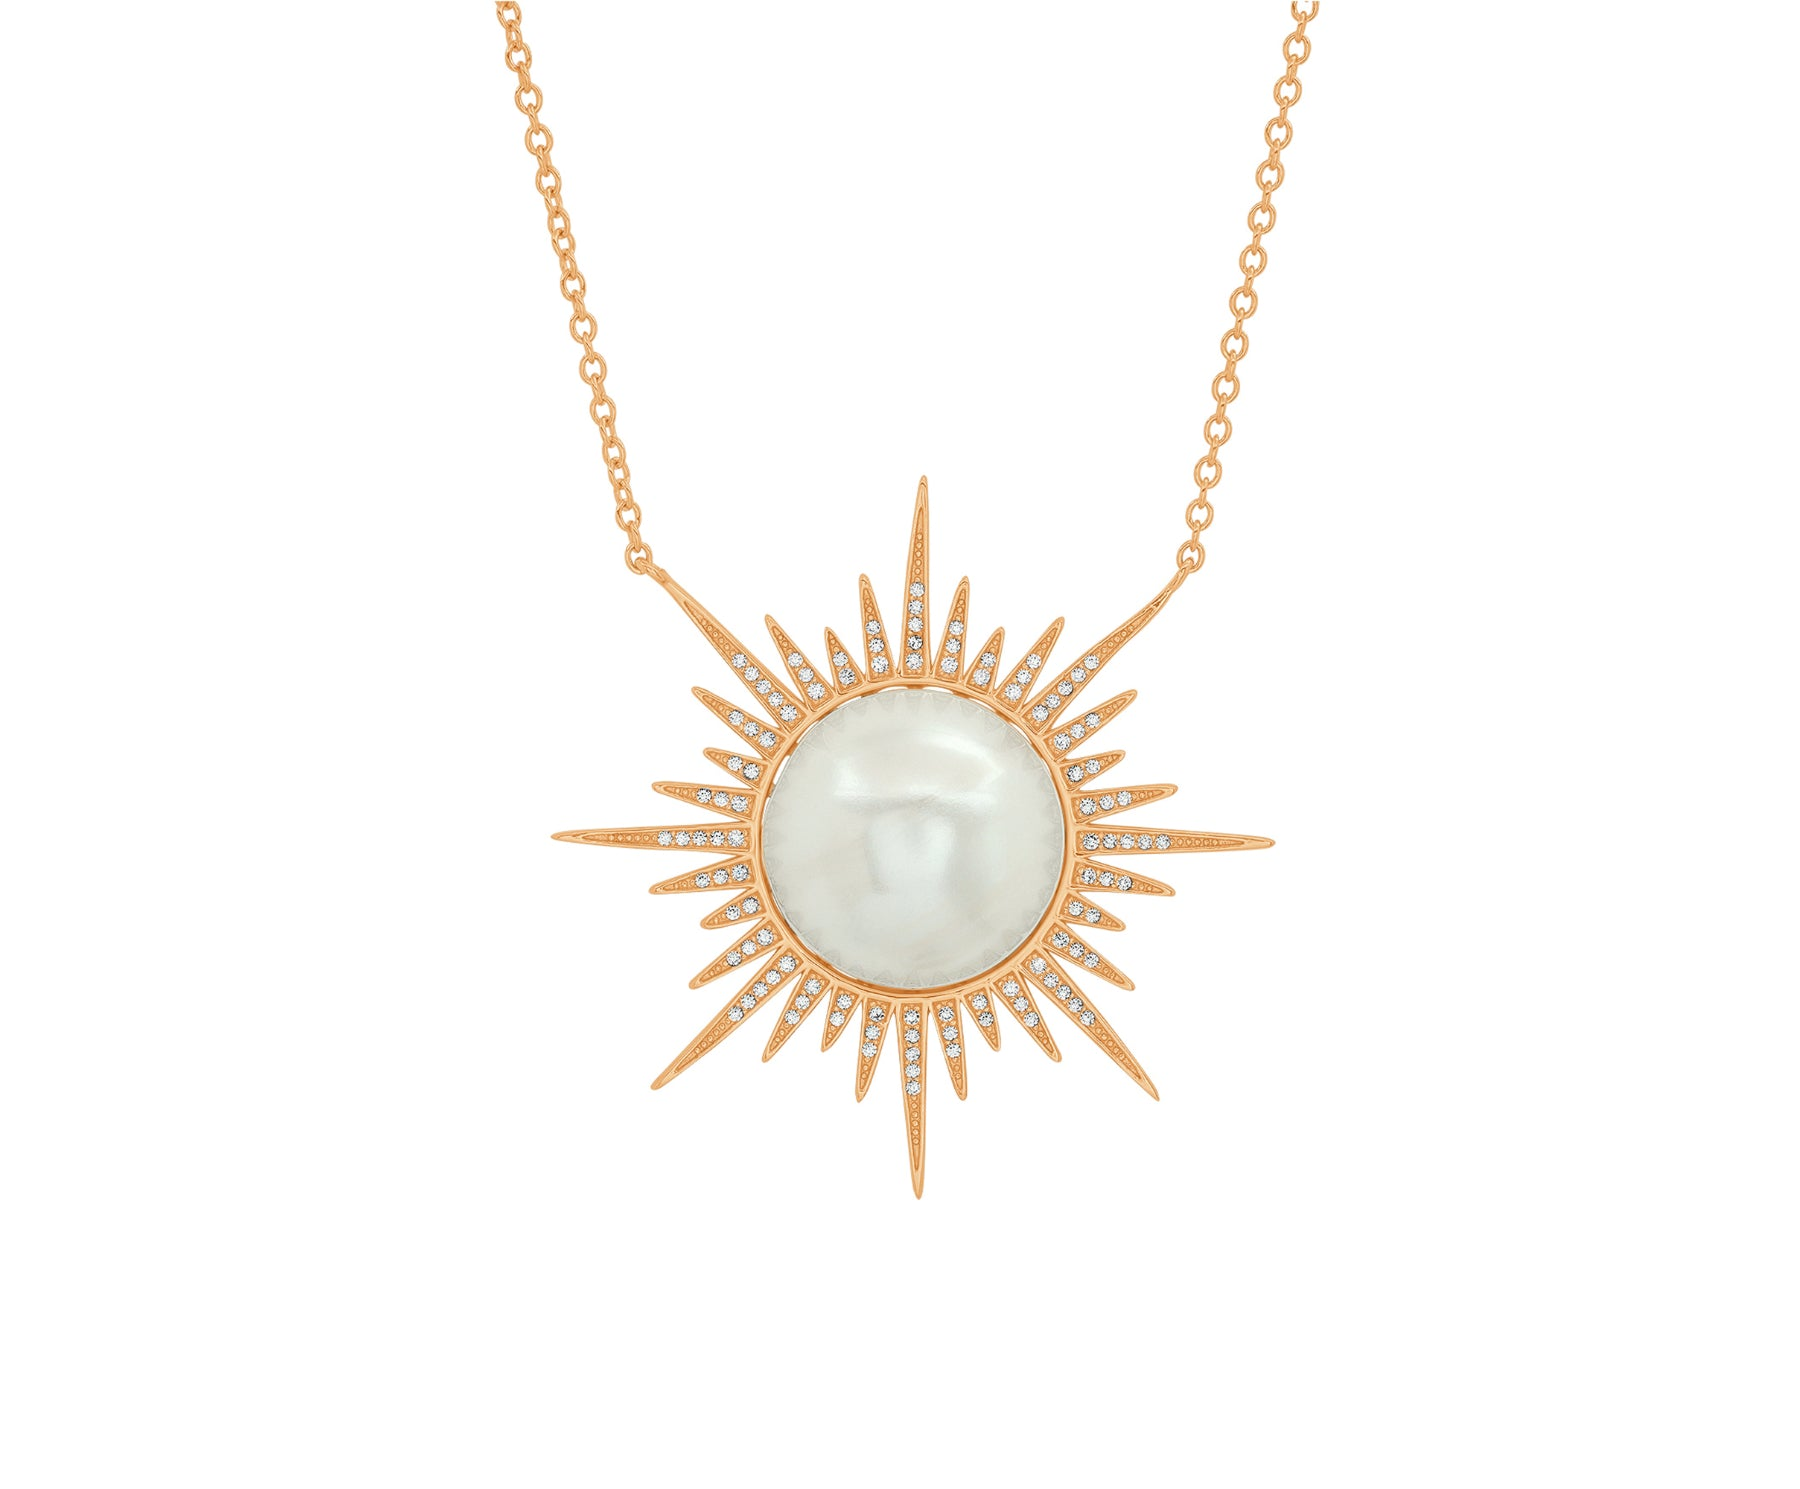 Sunburst Necklace in 18k Rose Gold